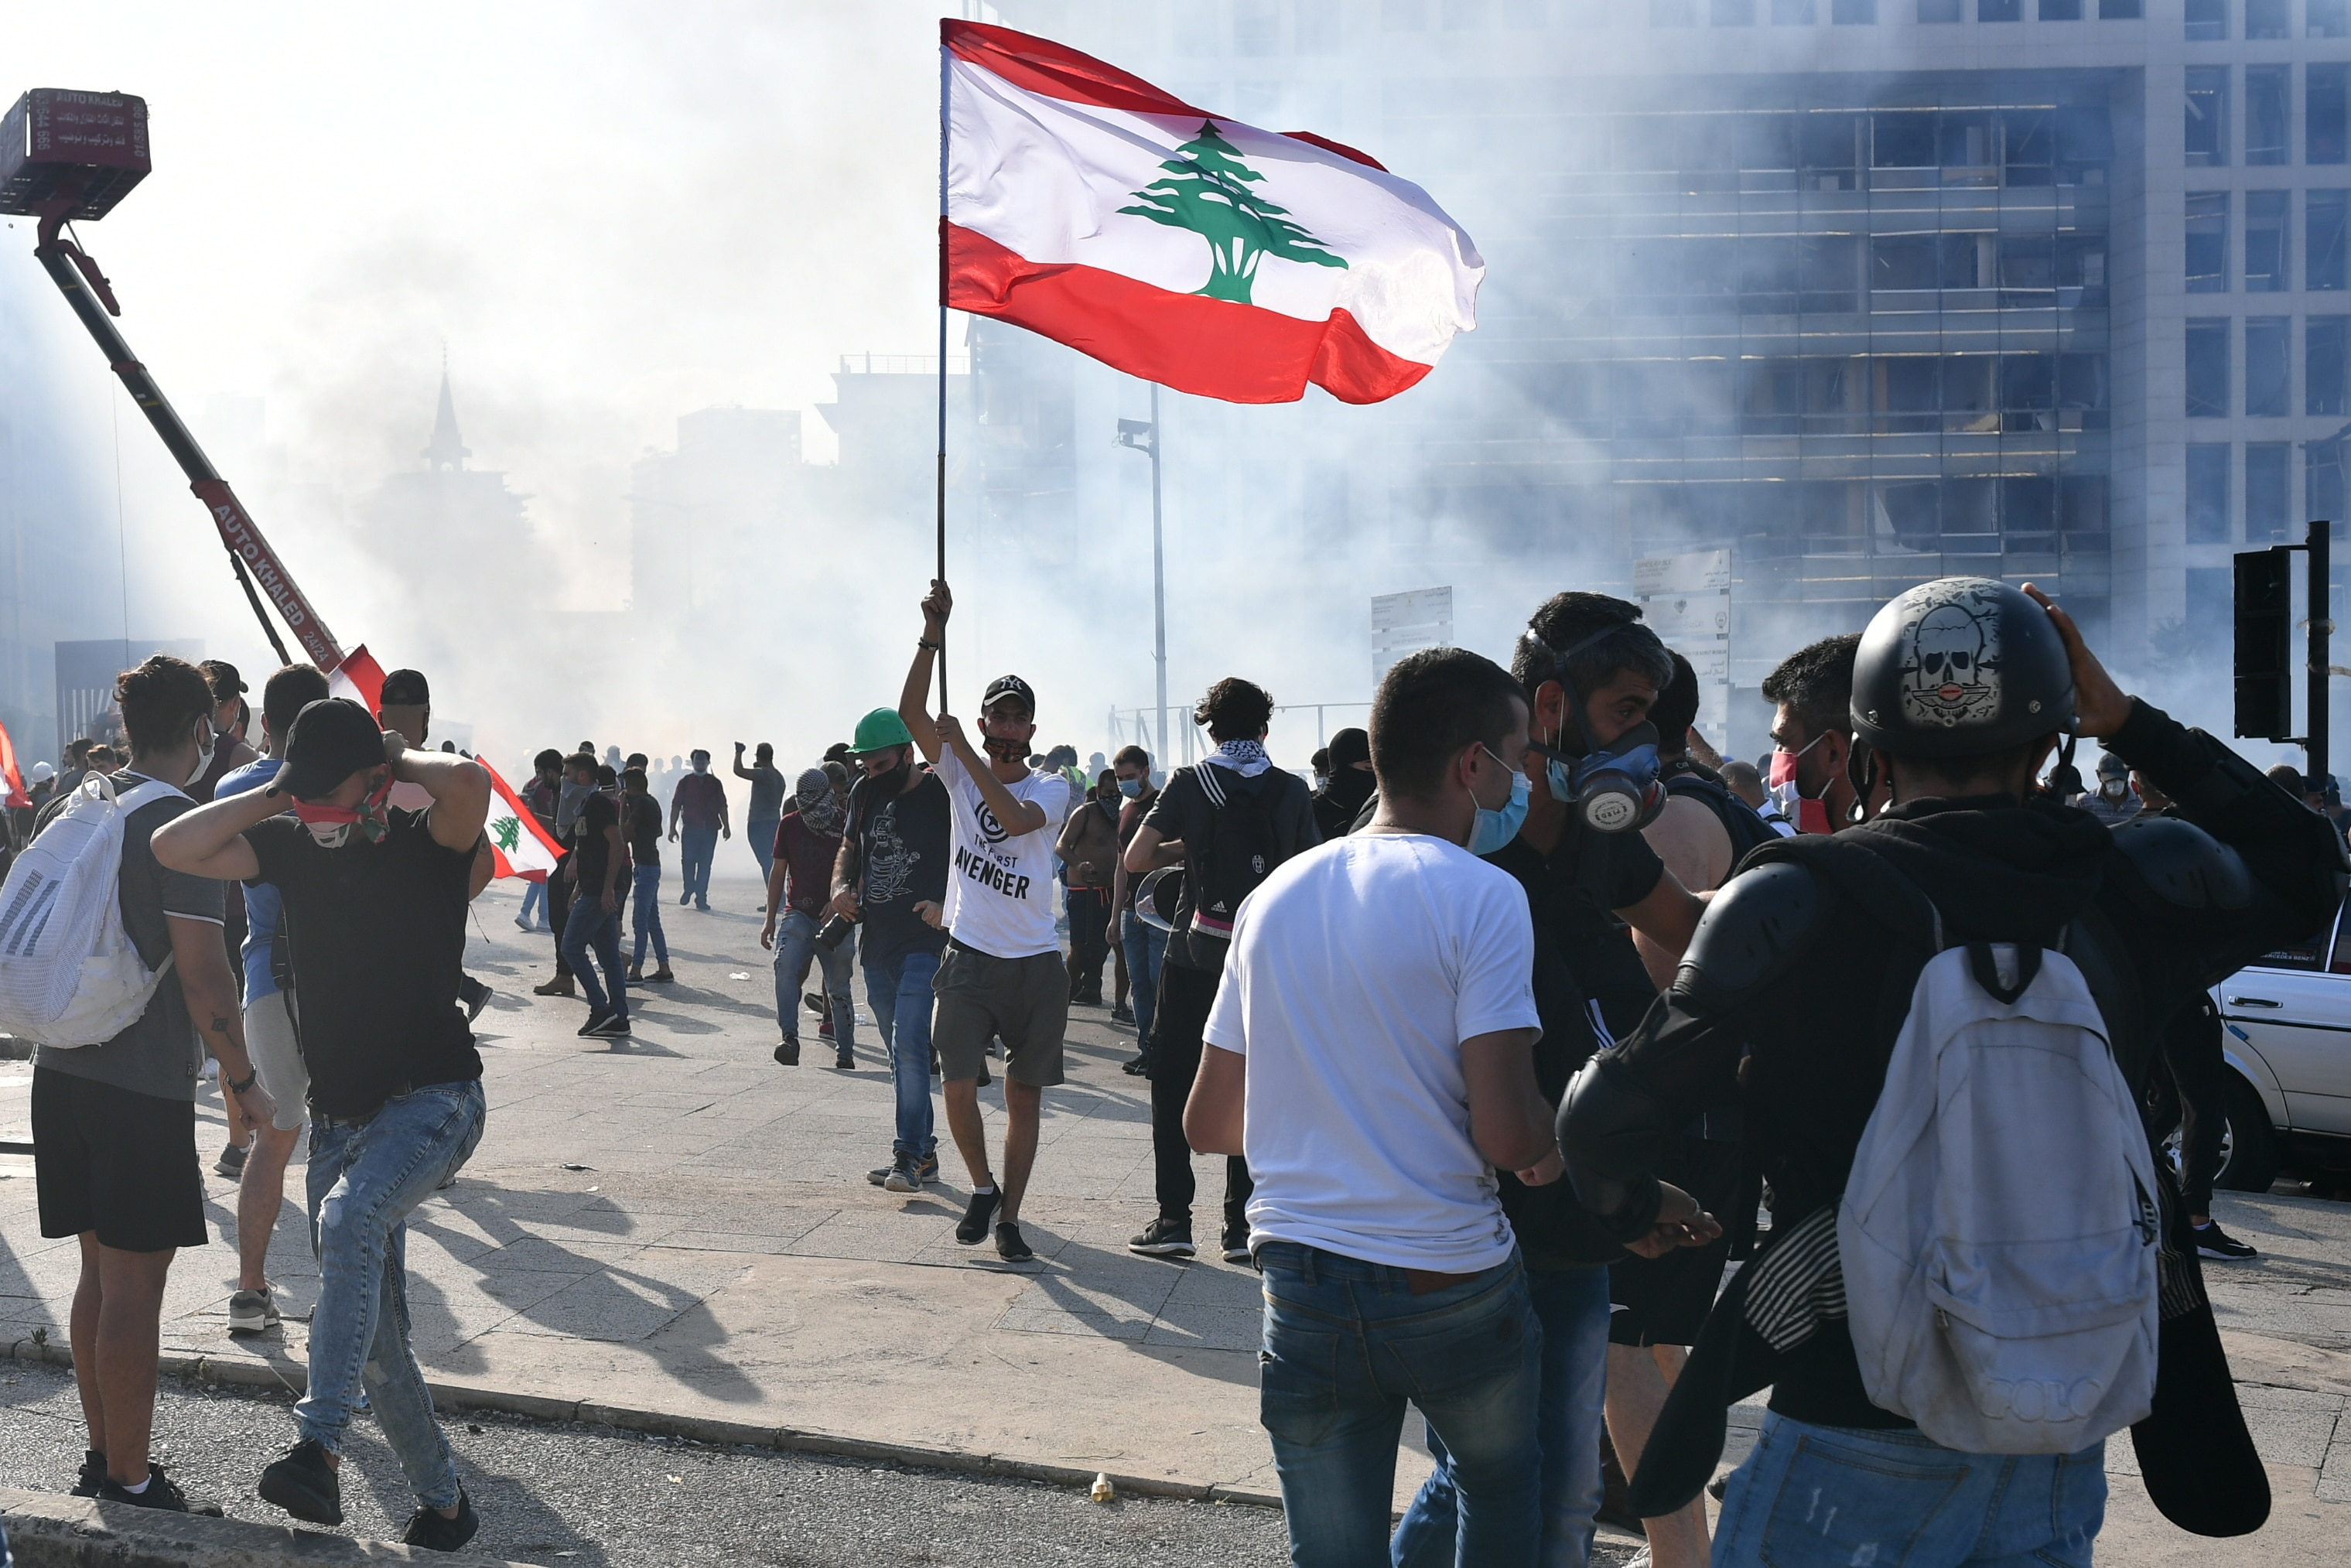 People take part in a protest in Beirut, demanding the resignation of the government led by Prime Minister Hassan Diab.